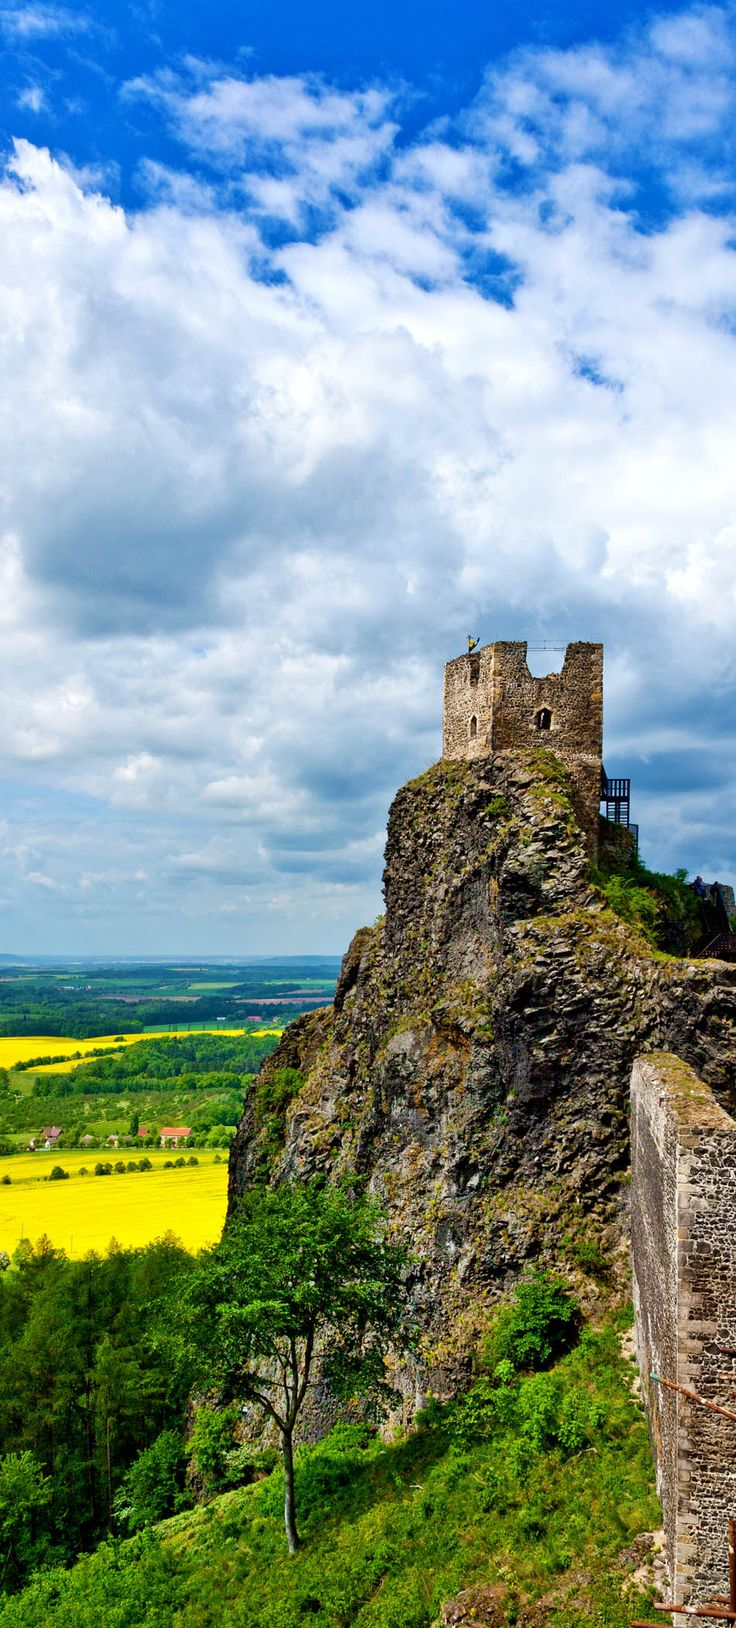 Gothic ruins of Trosky Castle, Bohemian Paradise region, Czech Republic | 22 Reasons why Czech Republic must be in the Top of your Bucket List